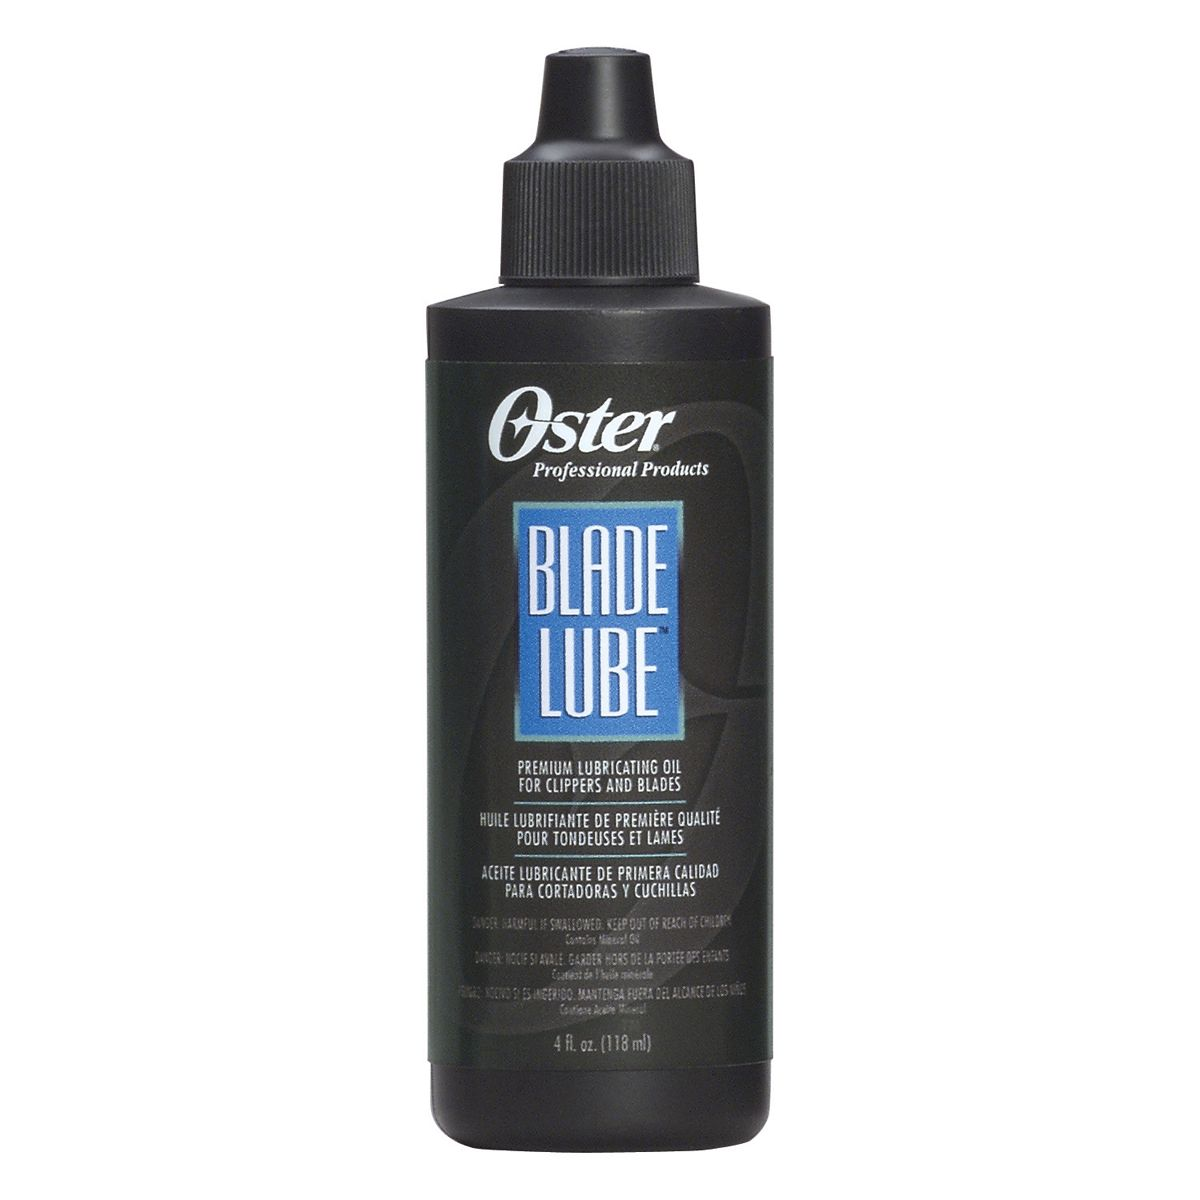 Oster Blade Lube Premium Lubricating Oil